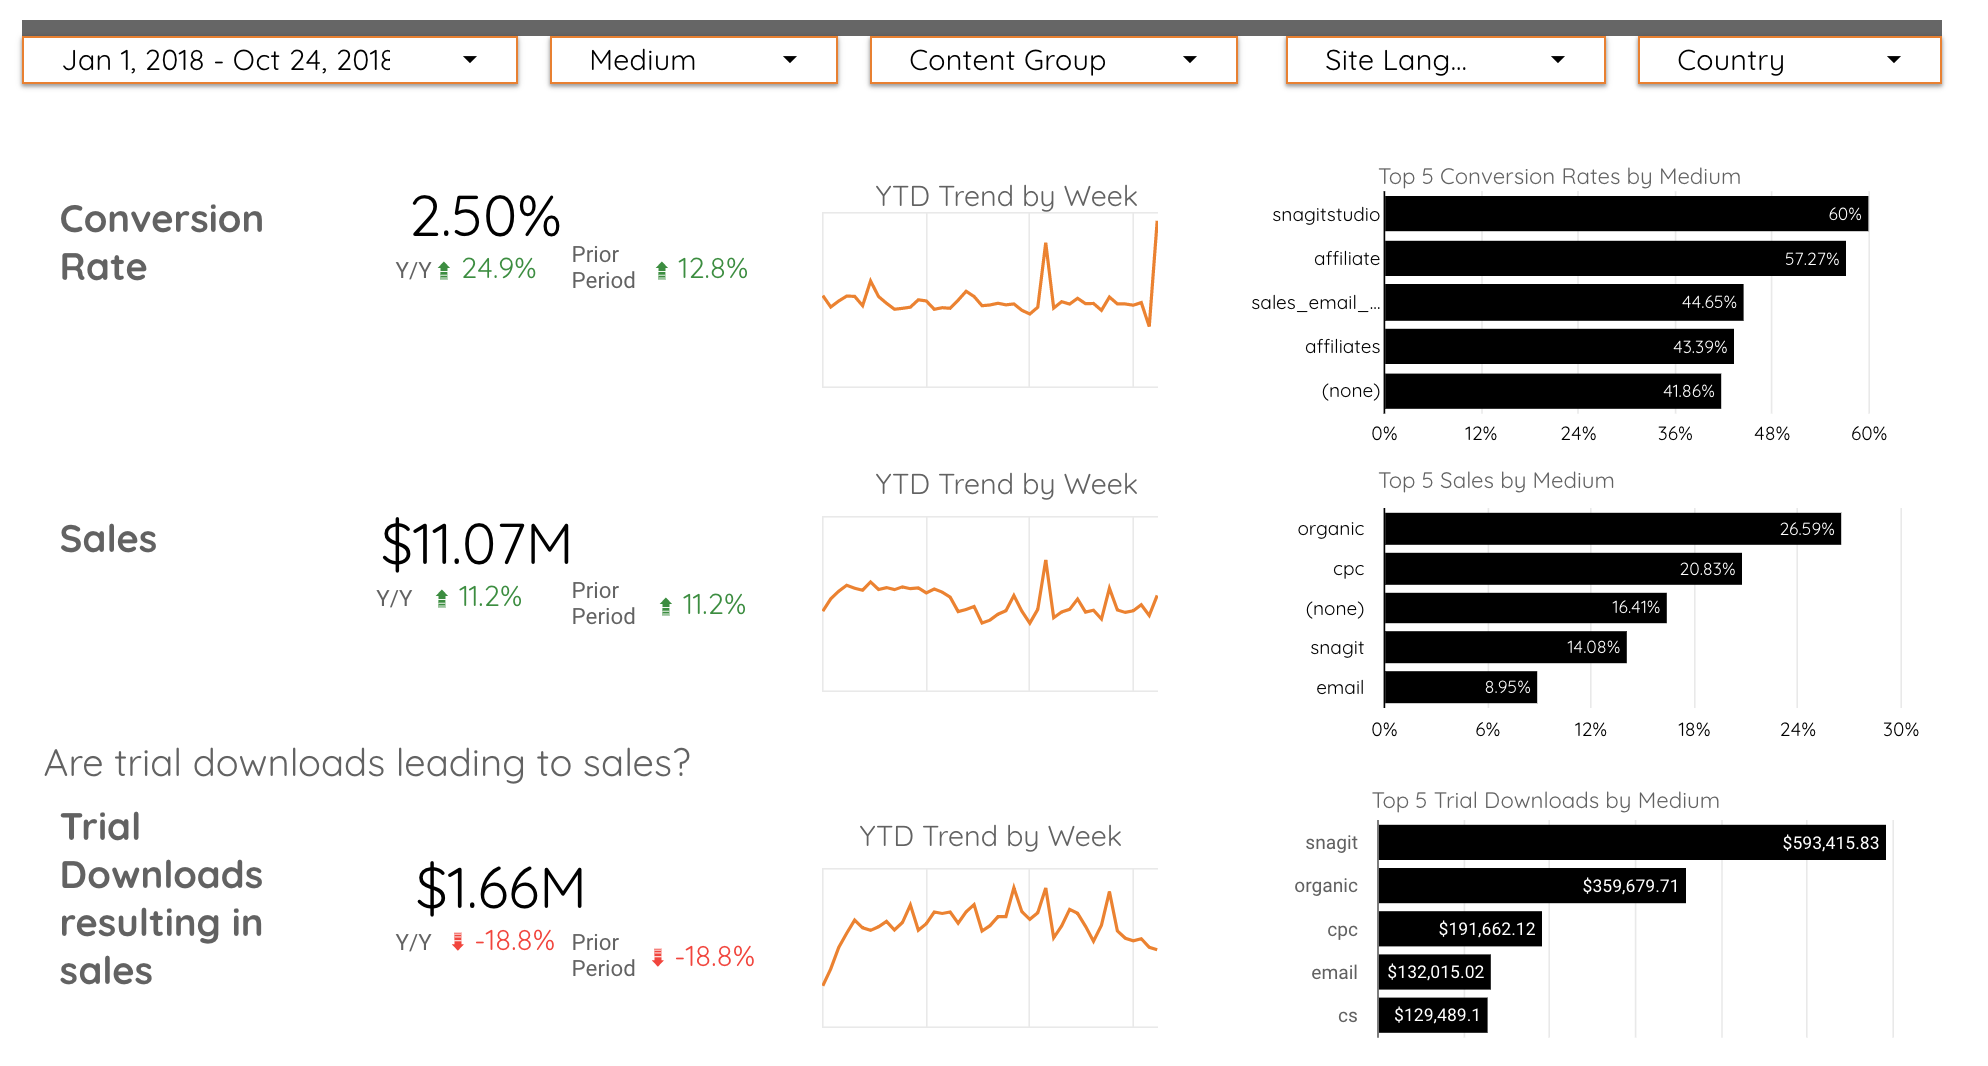 TechSmith Dashboard Sample.png